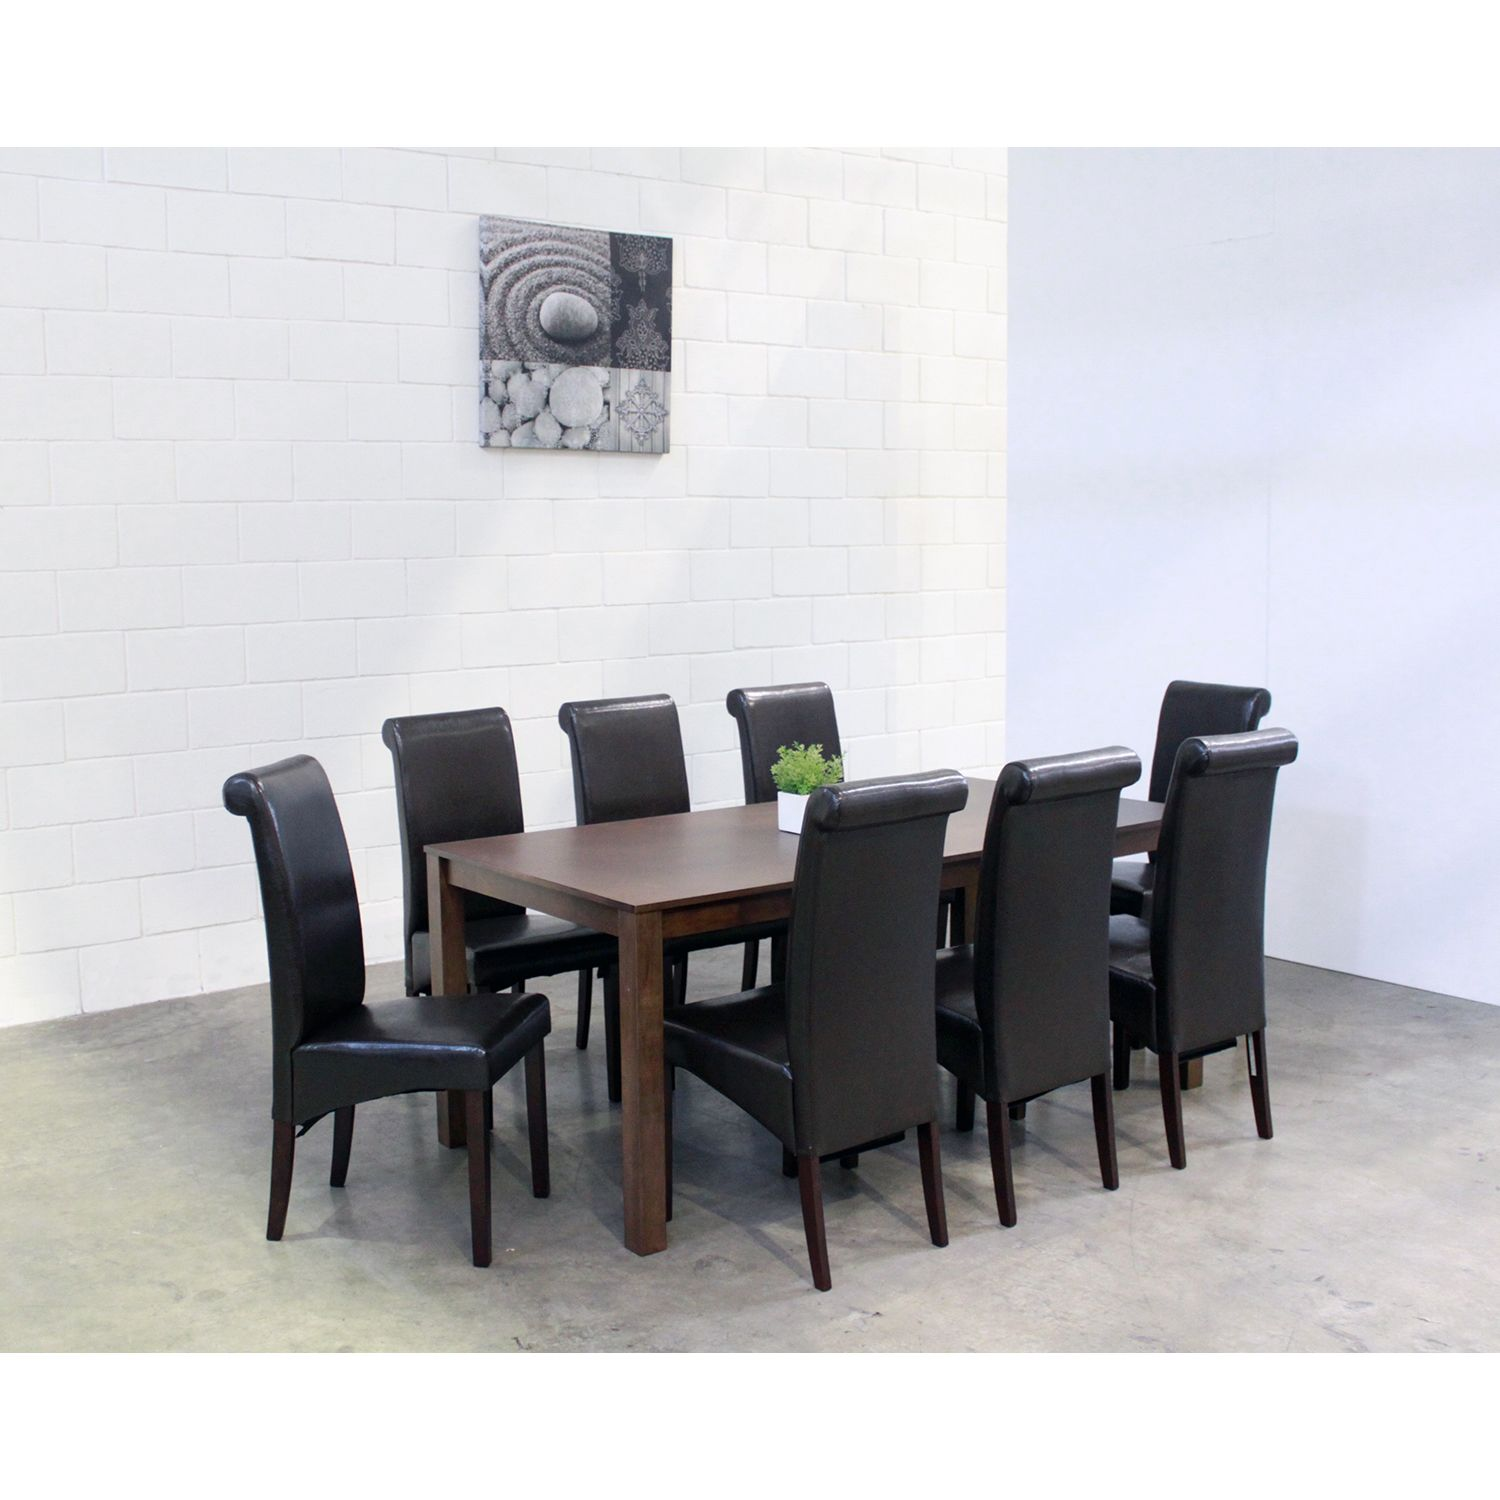 $850/9 Piece Set // Jasmine 9 Piece Brown Dining Set